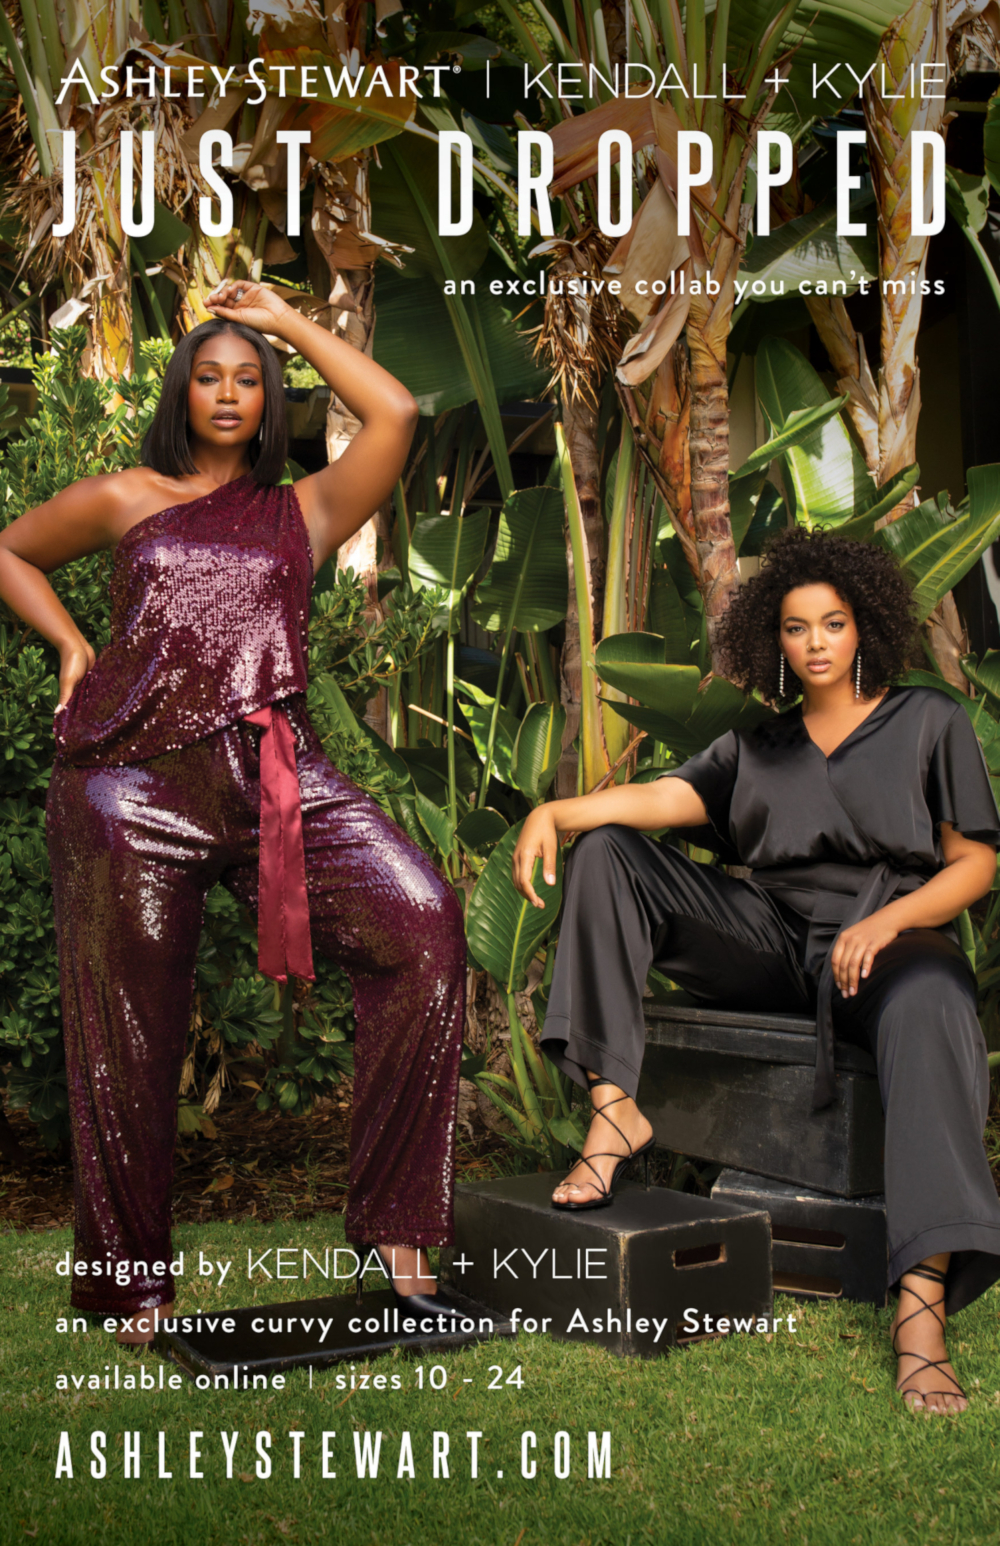 Ashley Stewart partners with Kendall + Kylie for debut Curvy collection. — Picture from Ashley Stewart via AFP-Relaxnews